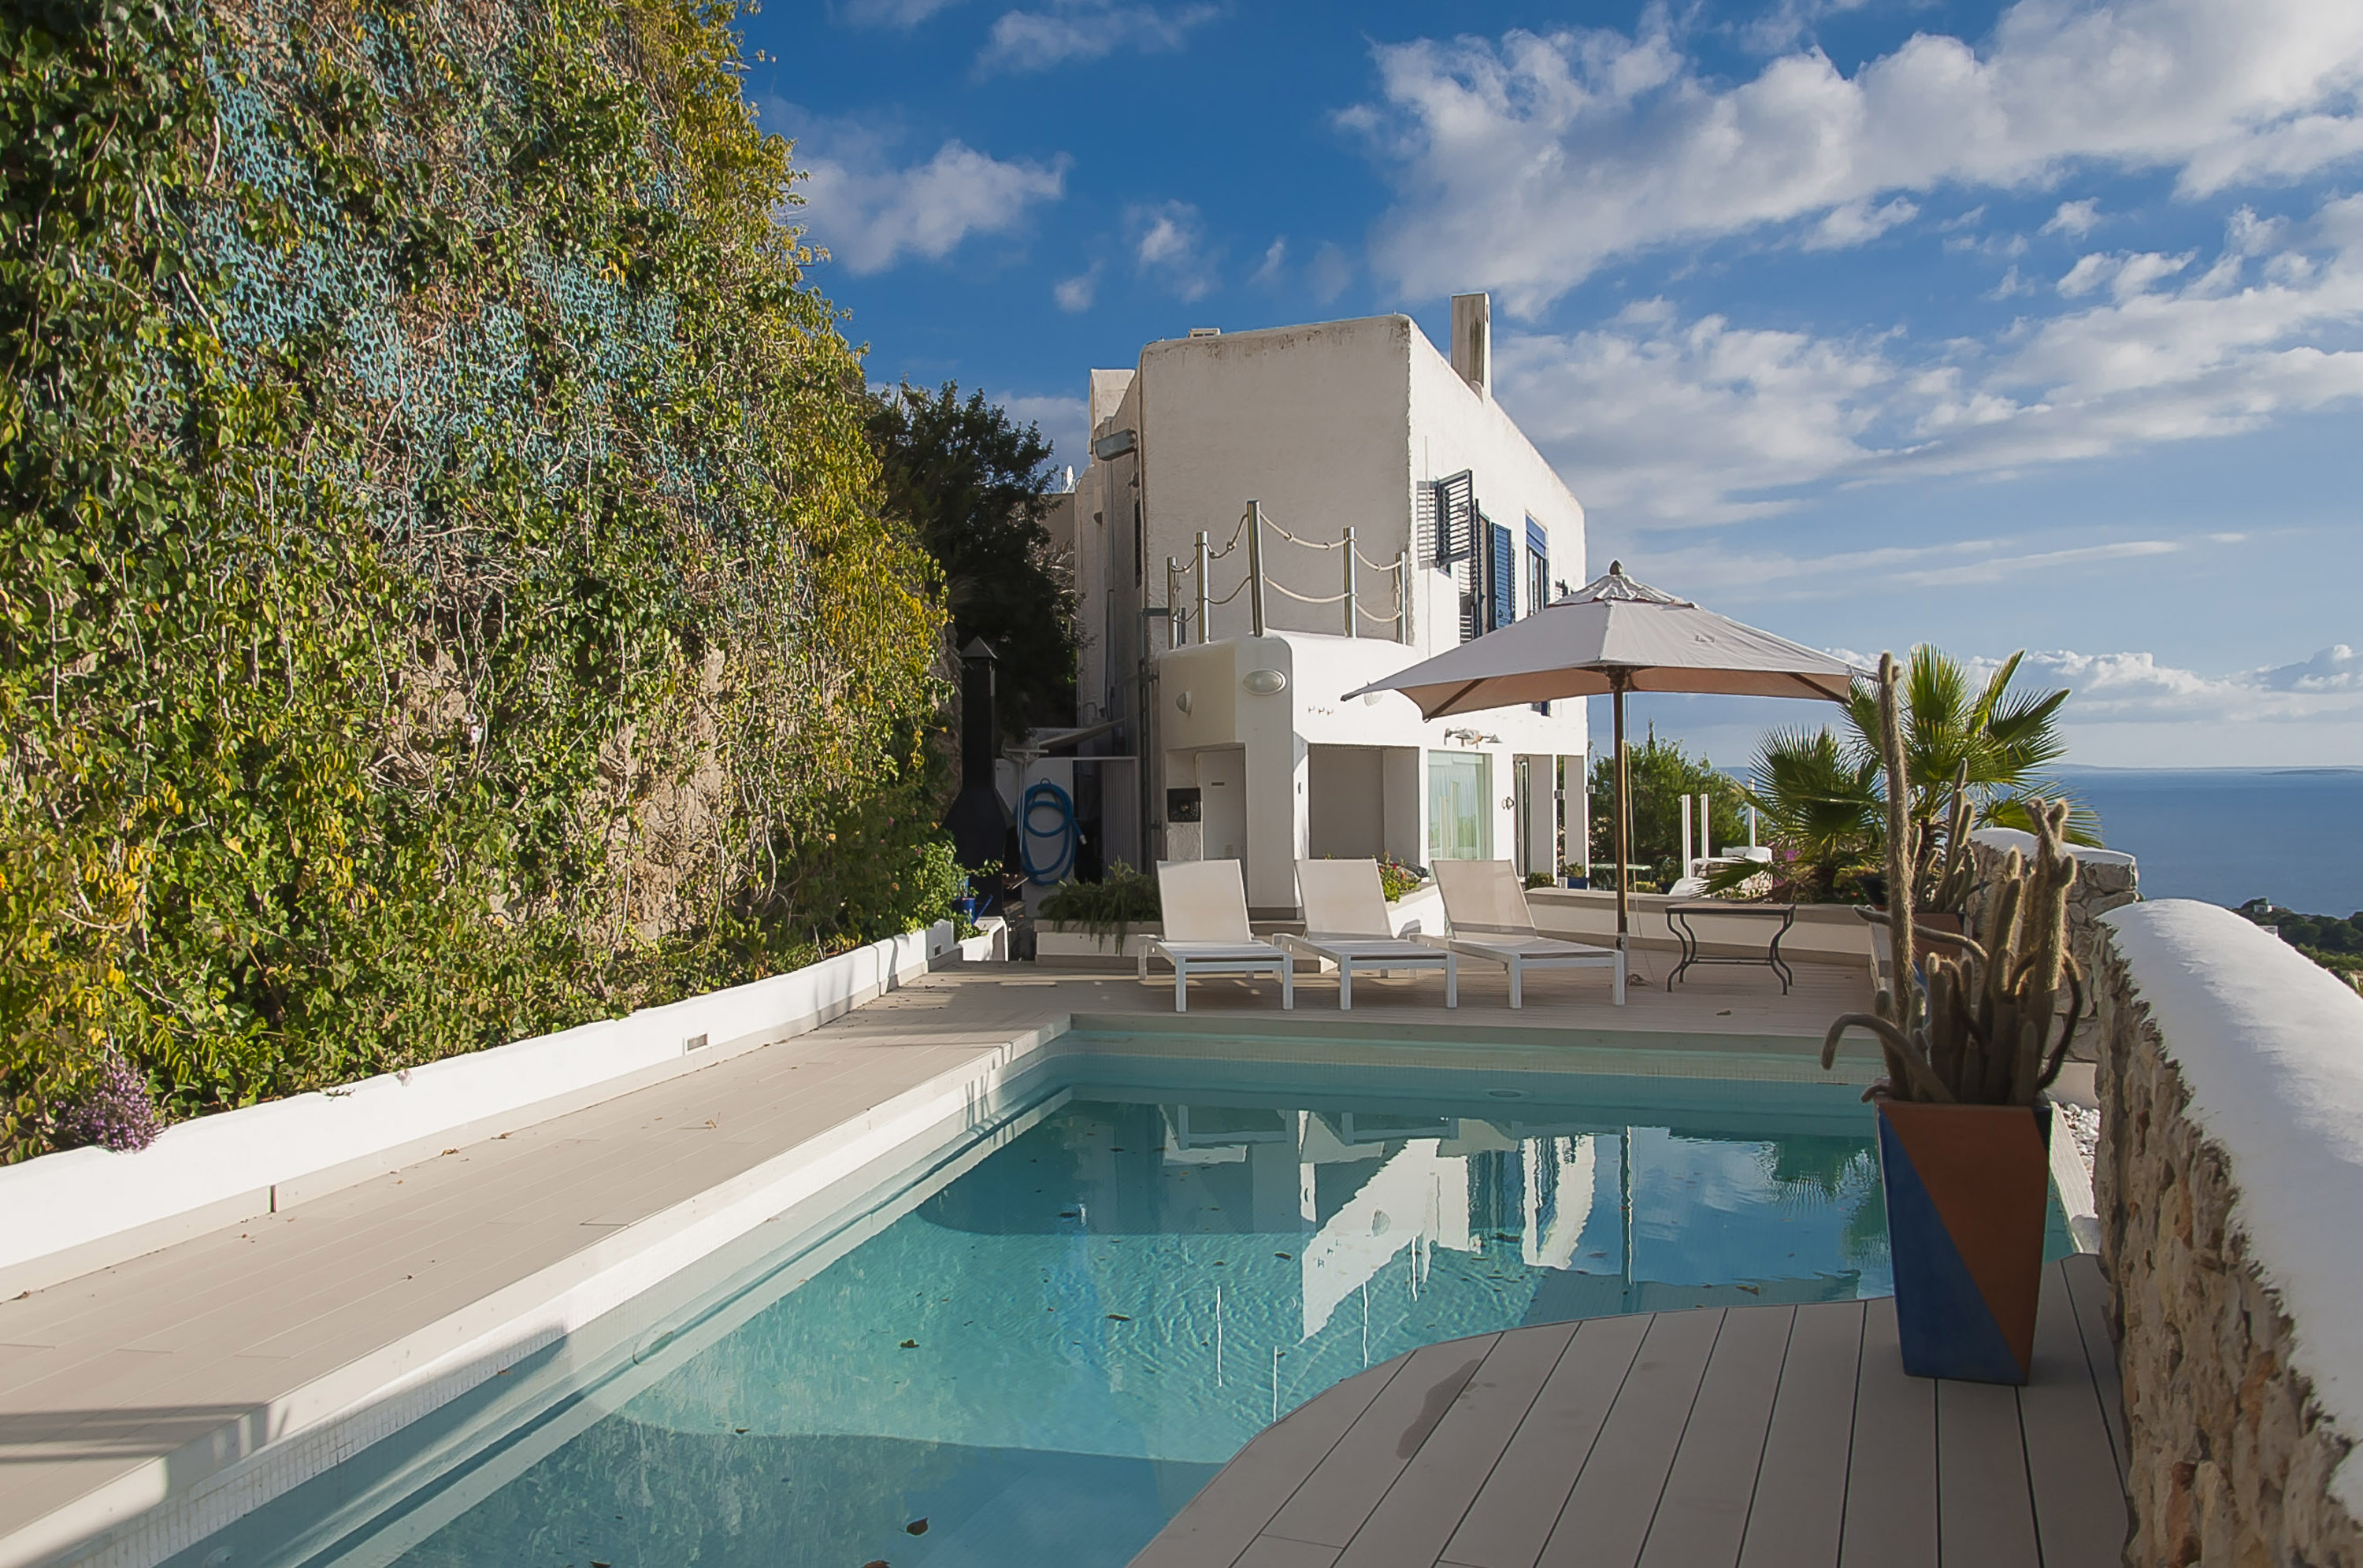 Mediterranean villa in best location of Ibiza with best views